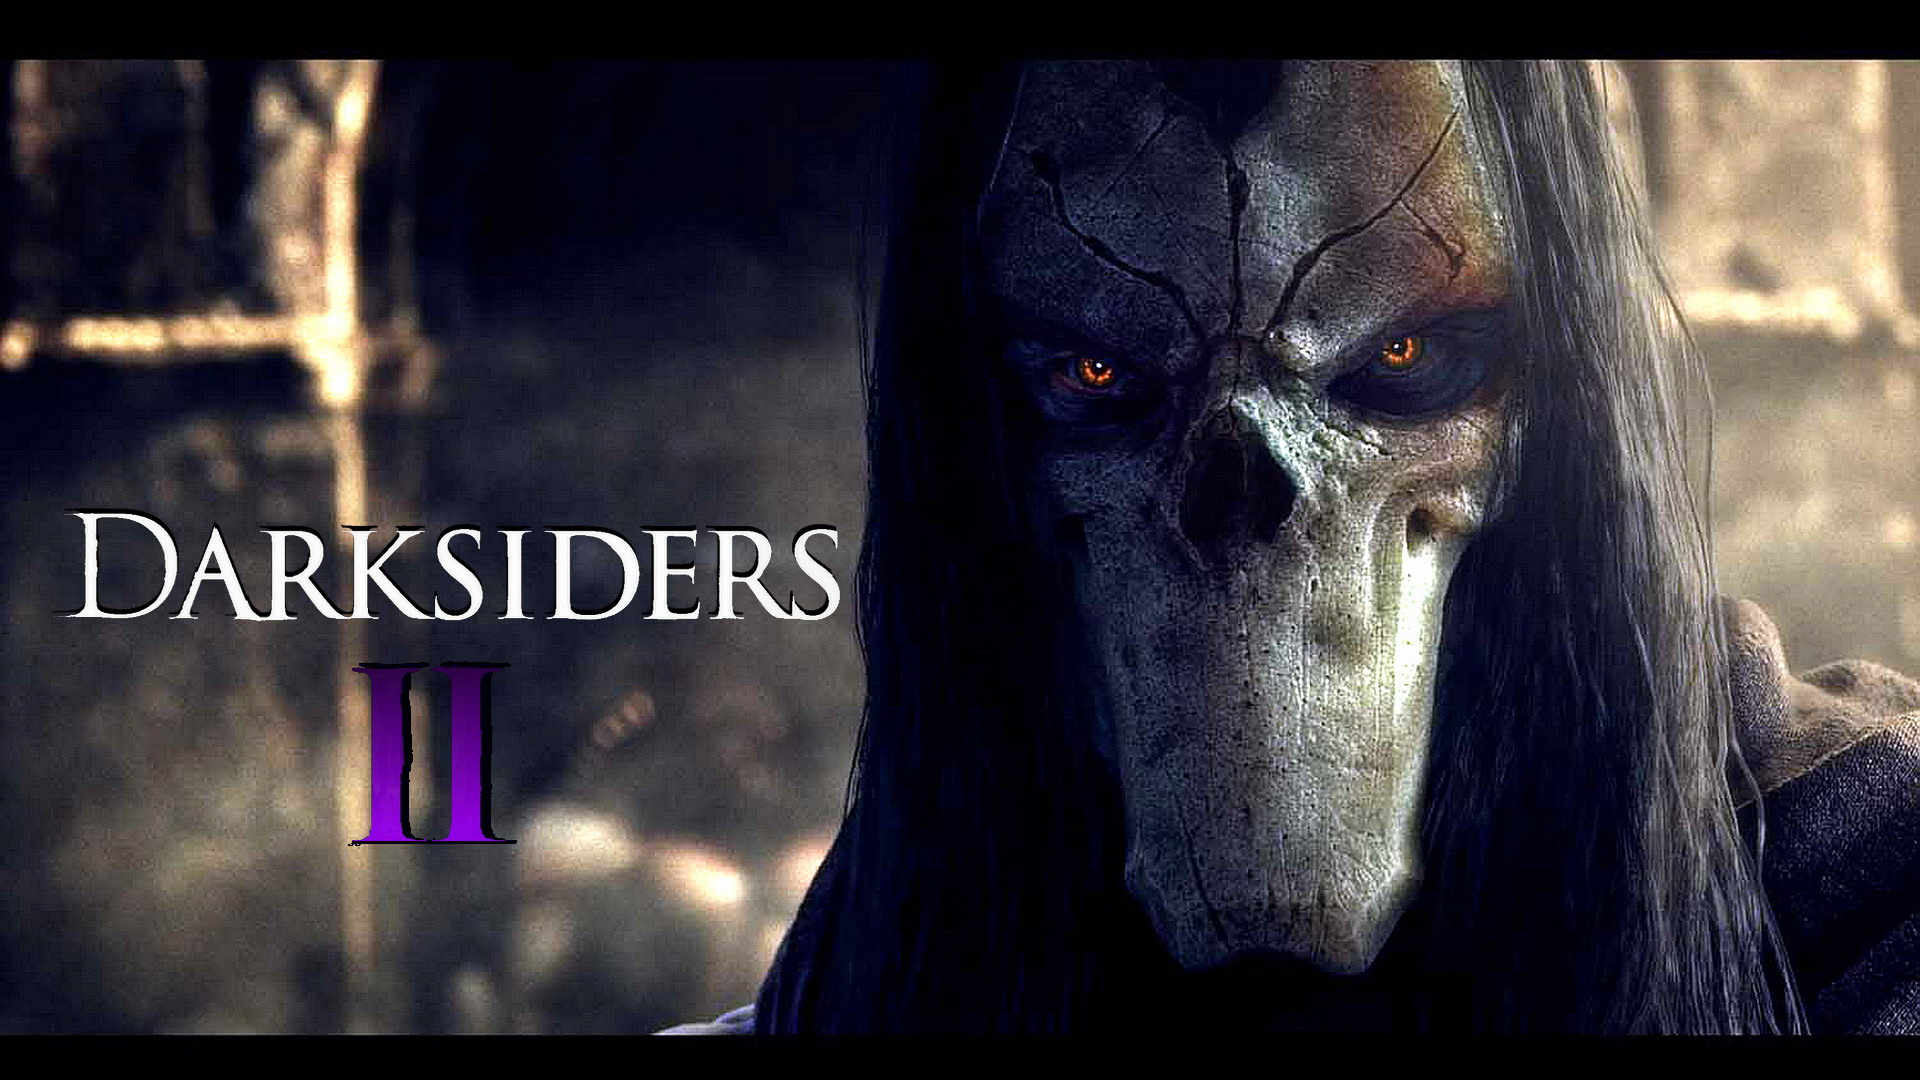 1 Darksiders II: Death Mask Wallpapers | Darksiders II: Death Mask